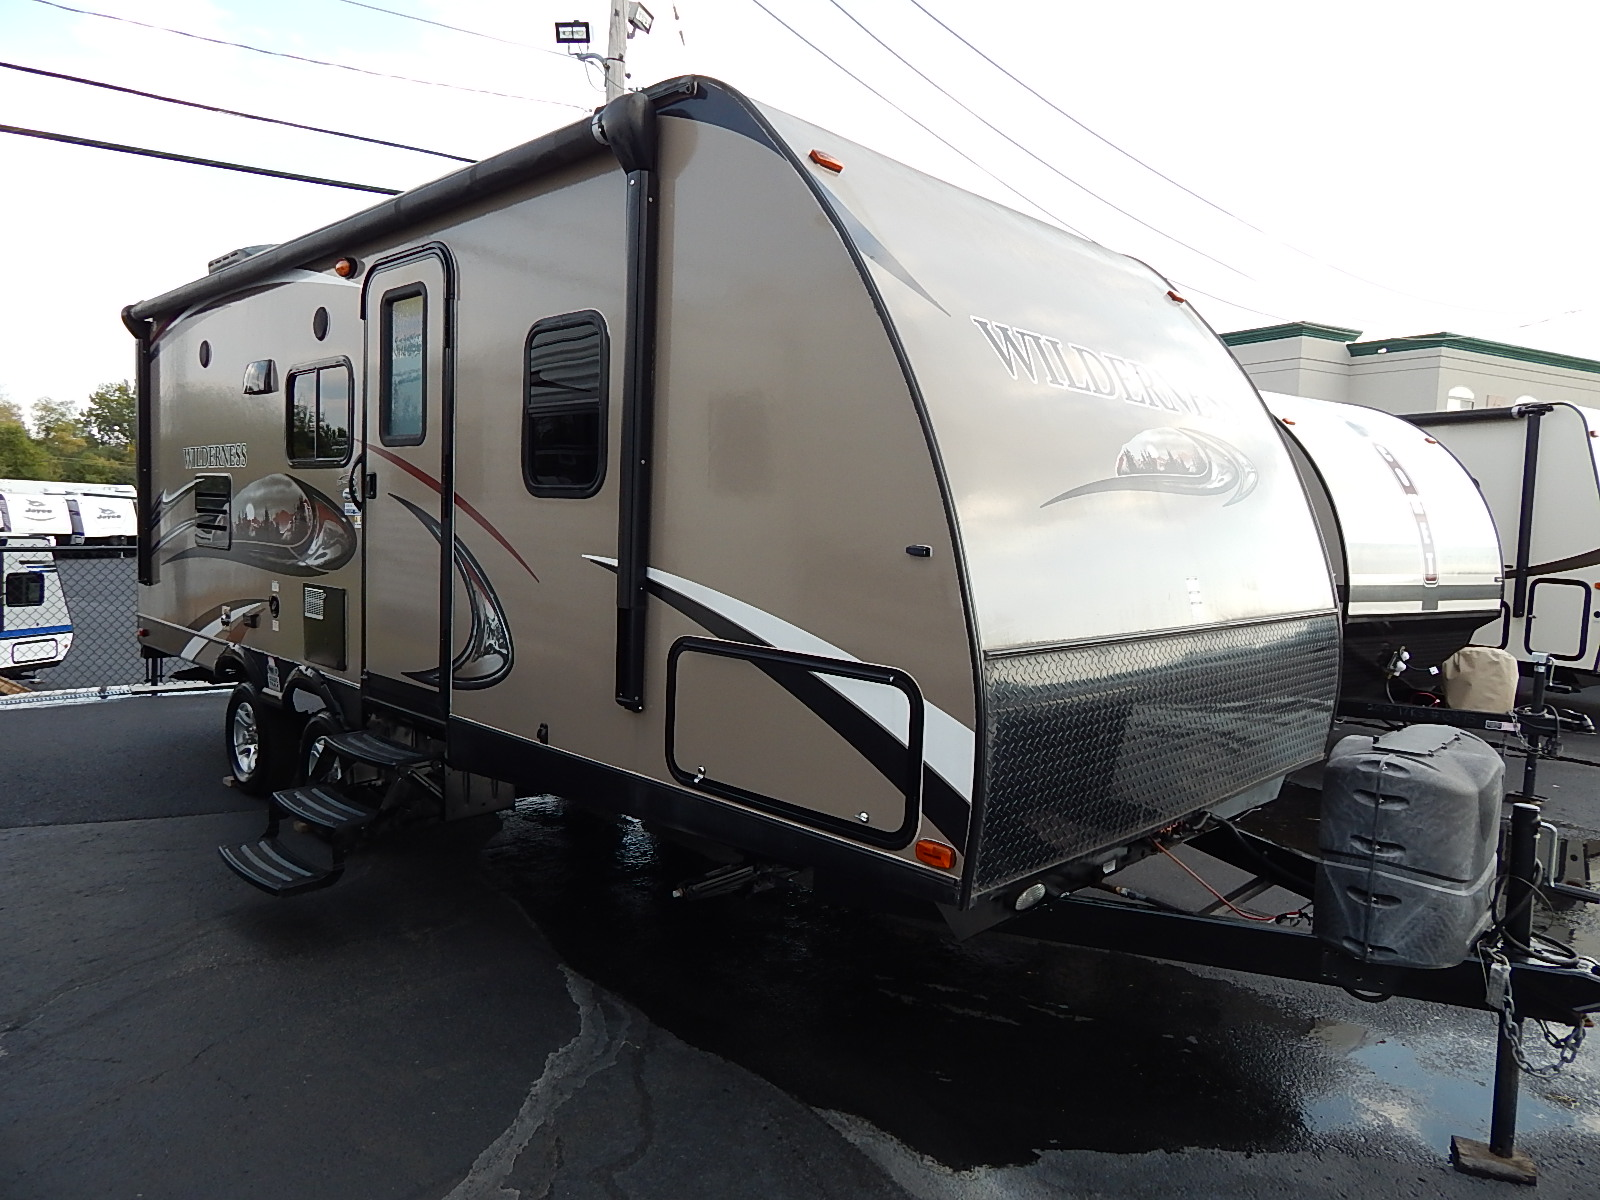 USED 2014 Heartland WILDERNESS 2175RB - Rick's RV Center